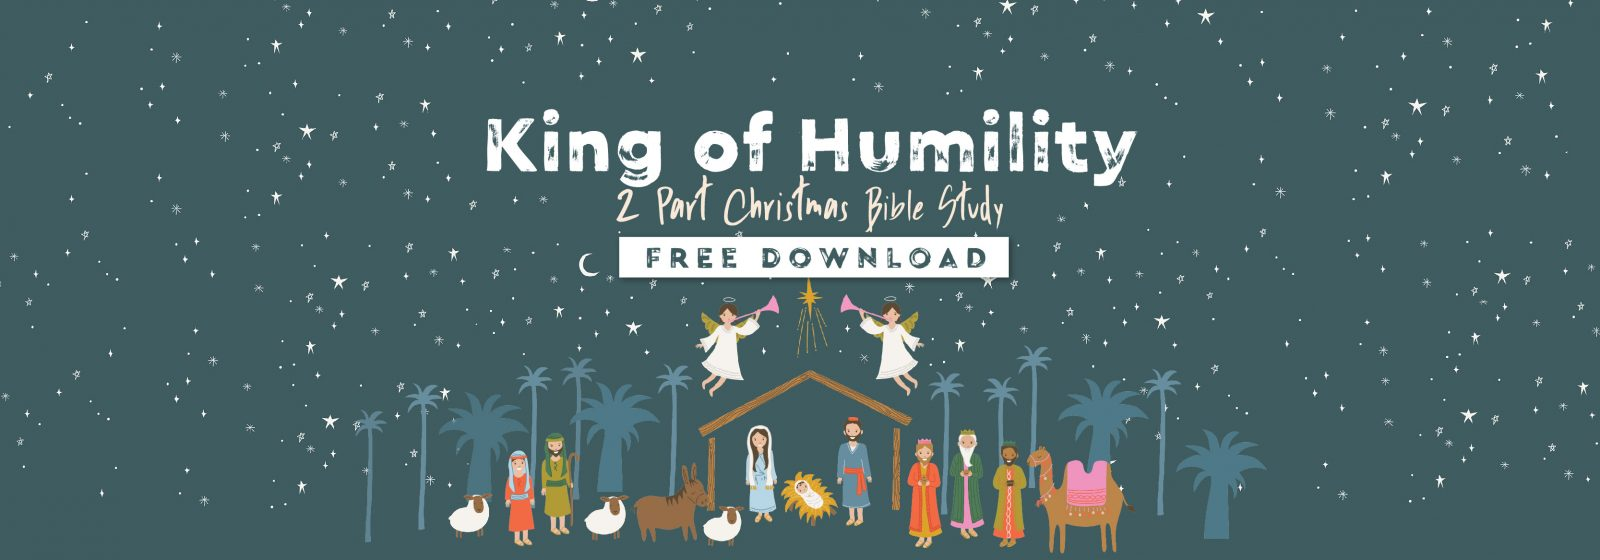 king of humility free youth ministry christmas bible study